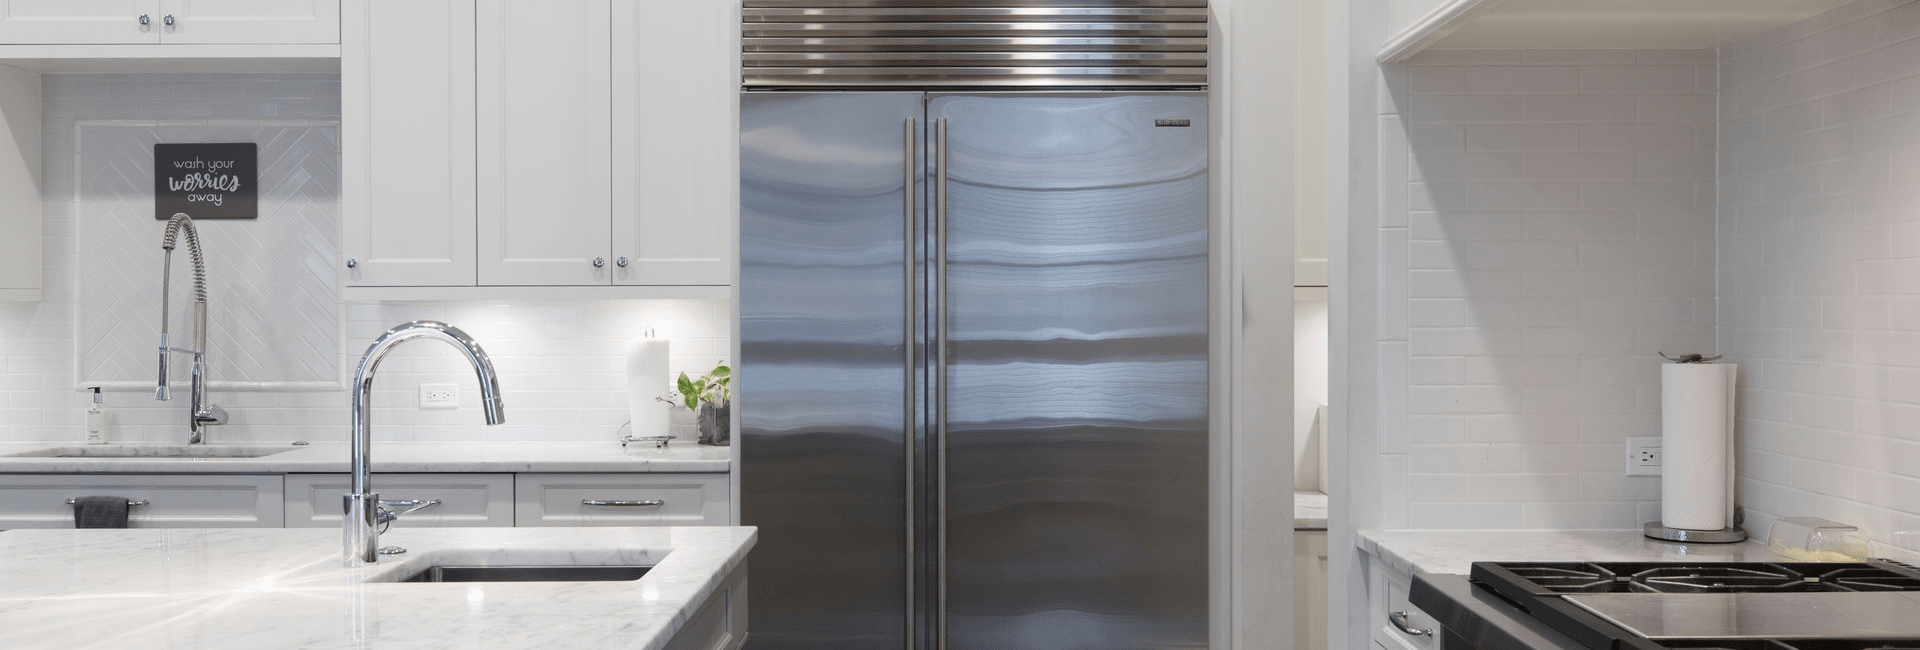 How to Get More Space in Refrigerators (Hint: OLED Light)